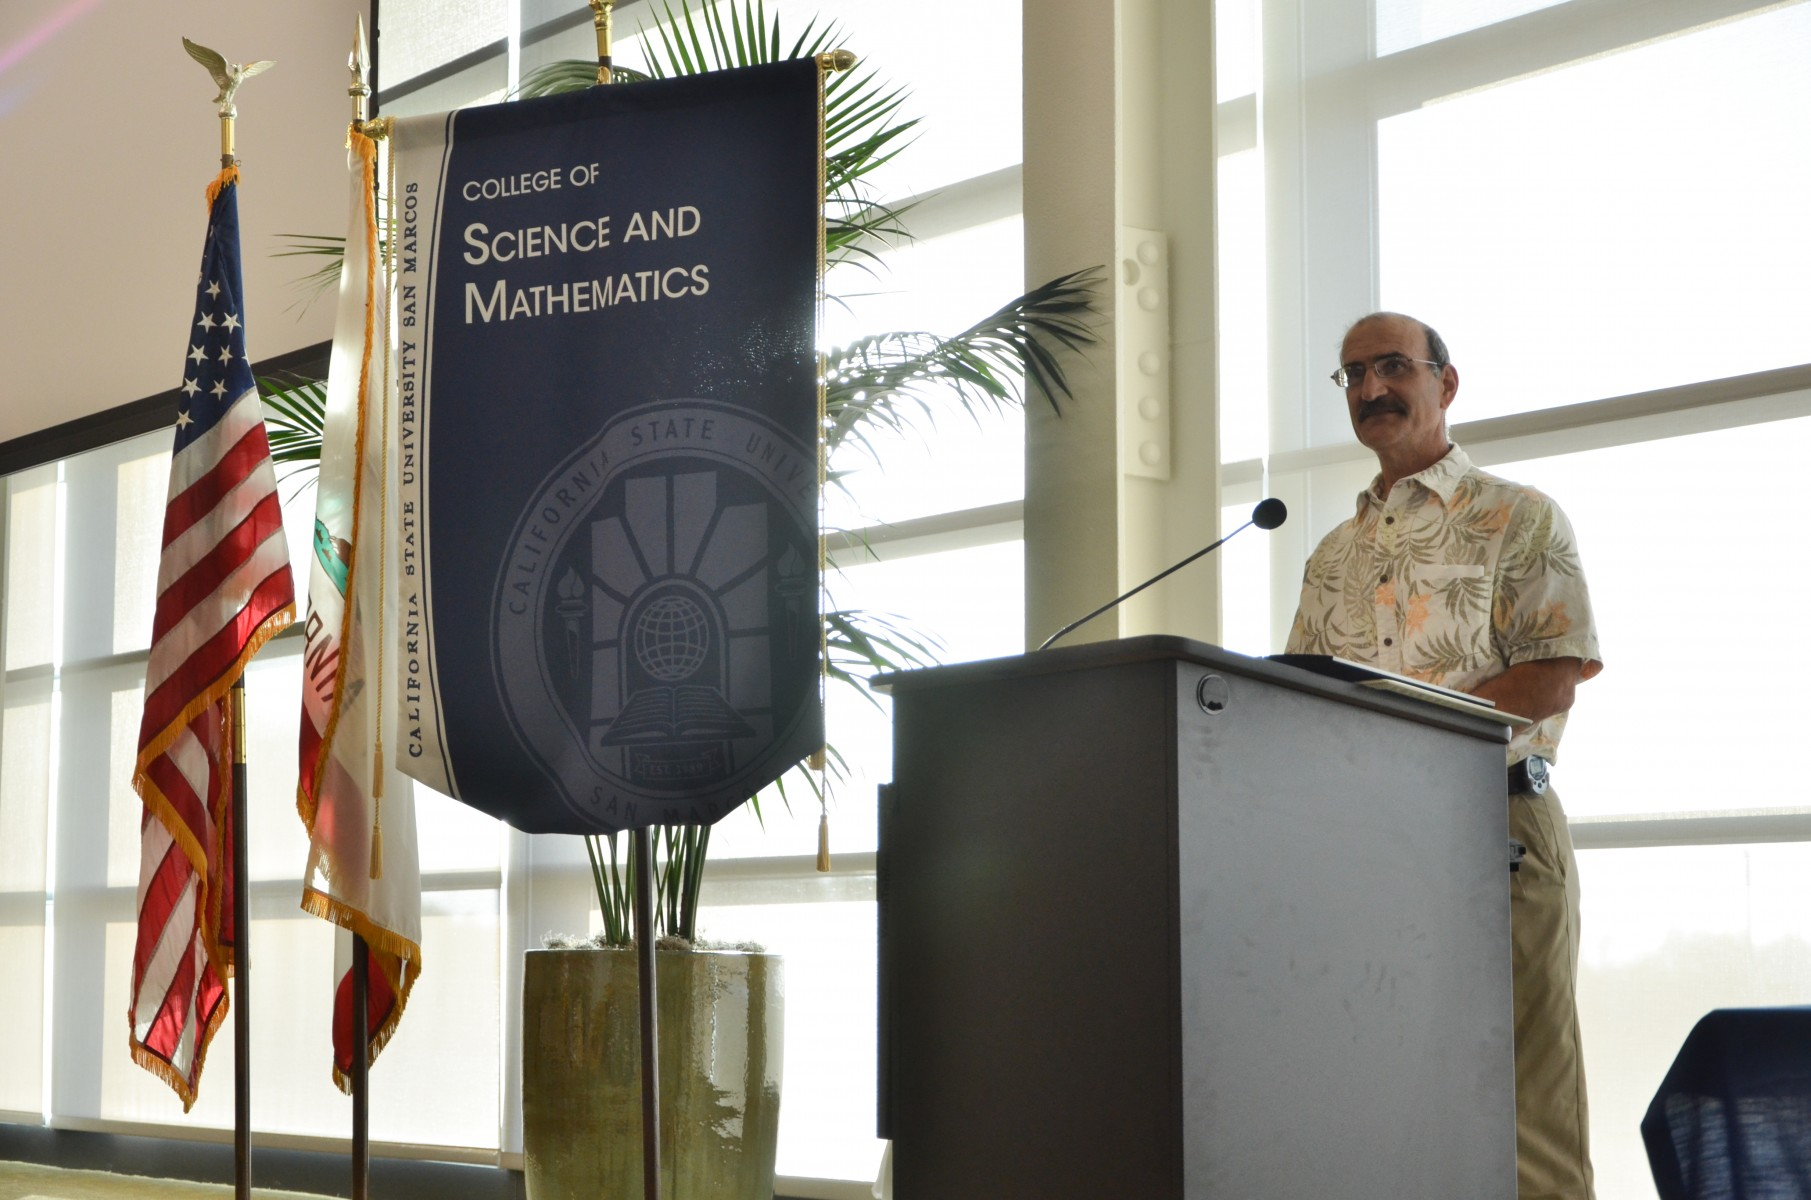 Chemistry and biochemistry professor Paul Jasien, pictured at an event on campus before the COVID-19 pandemic.